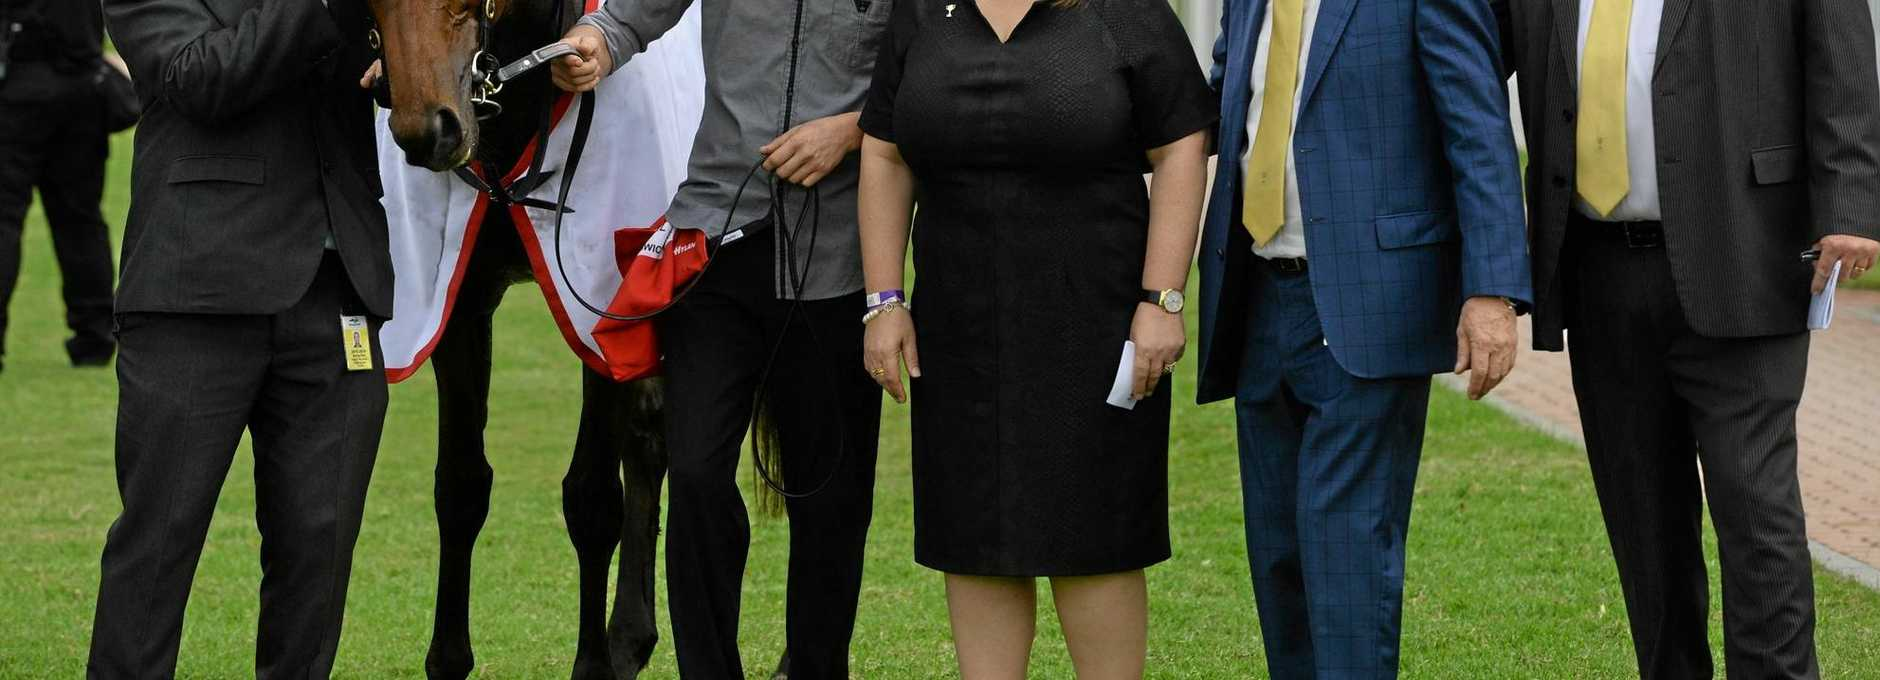 RACING'S FRIEND: Racing Minister Grace Grace (centre) at the Ipswich Cup last month. Ms Grace is backing Ipswich Turf Club's redevelopment plans.